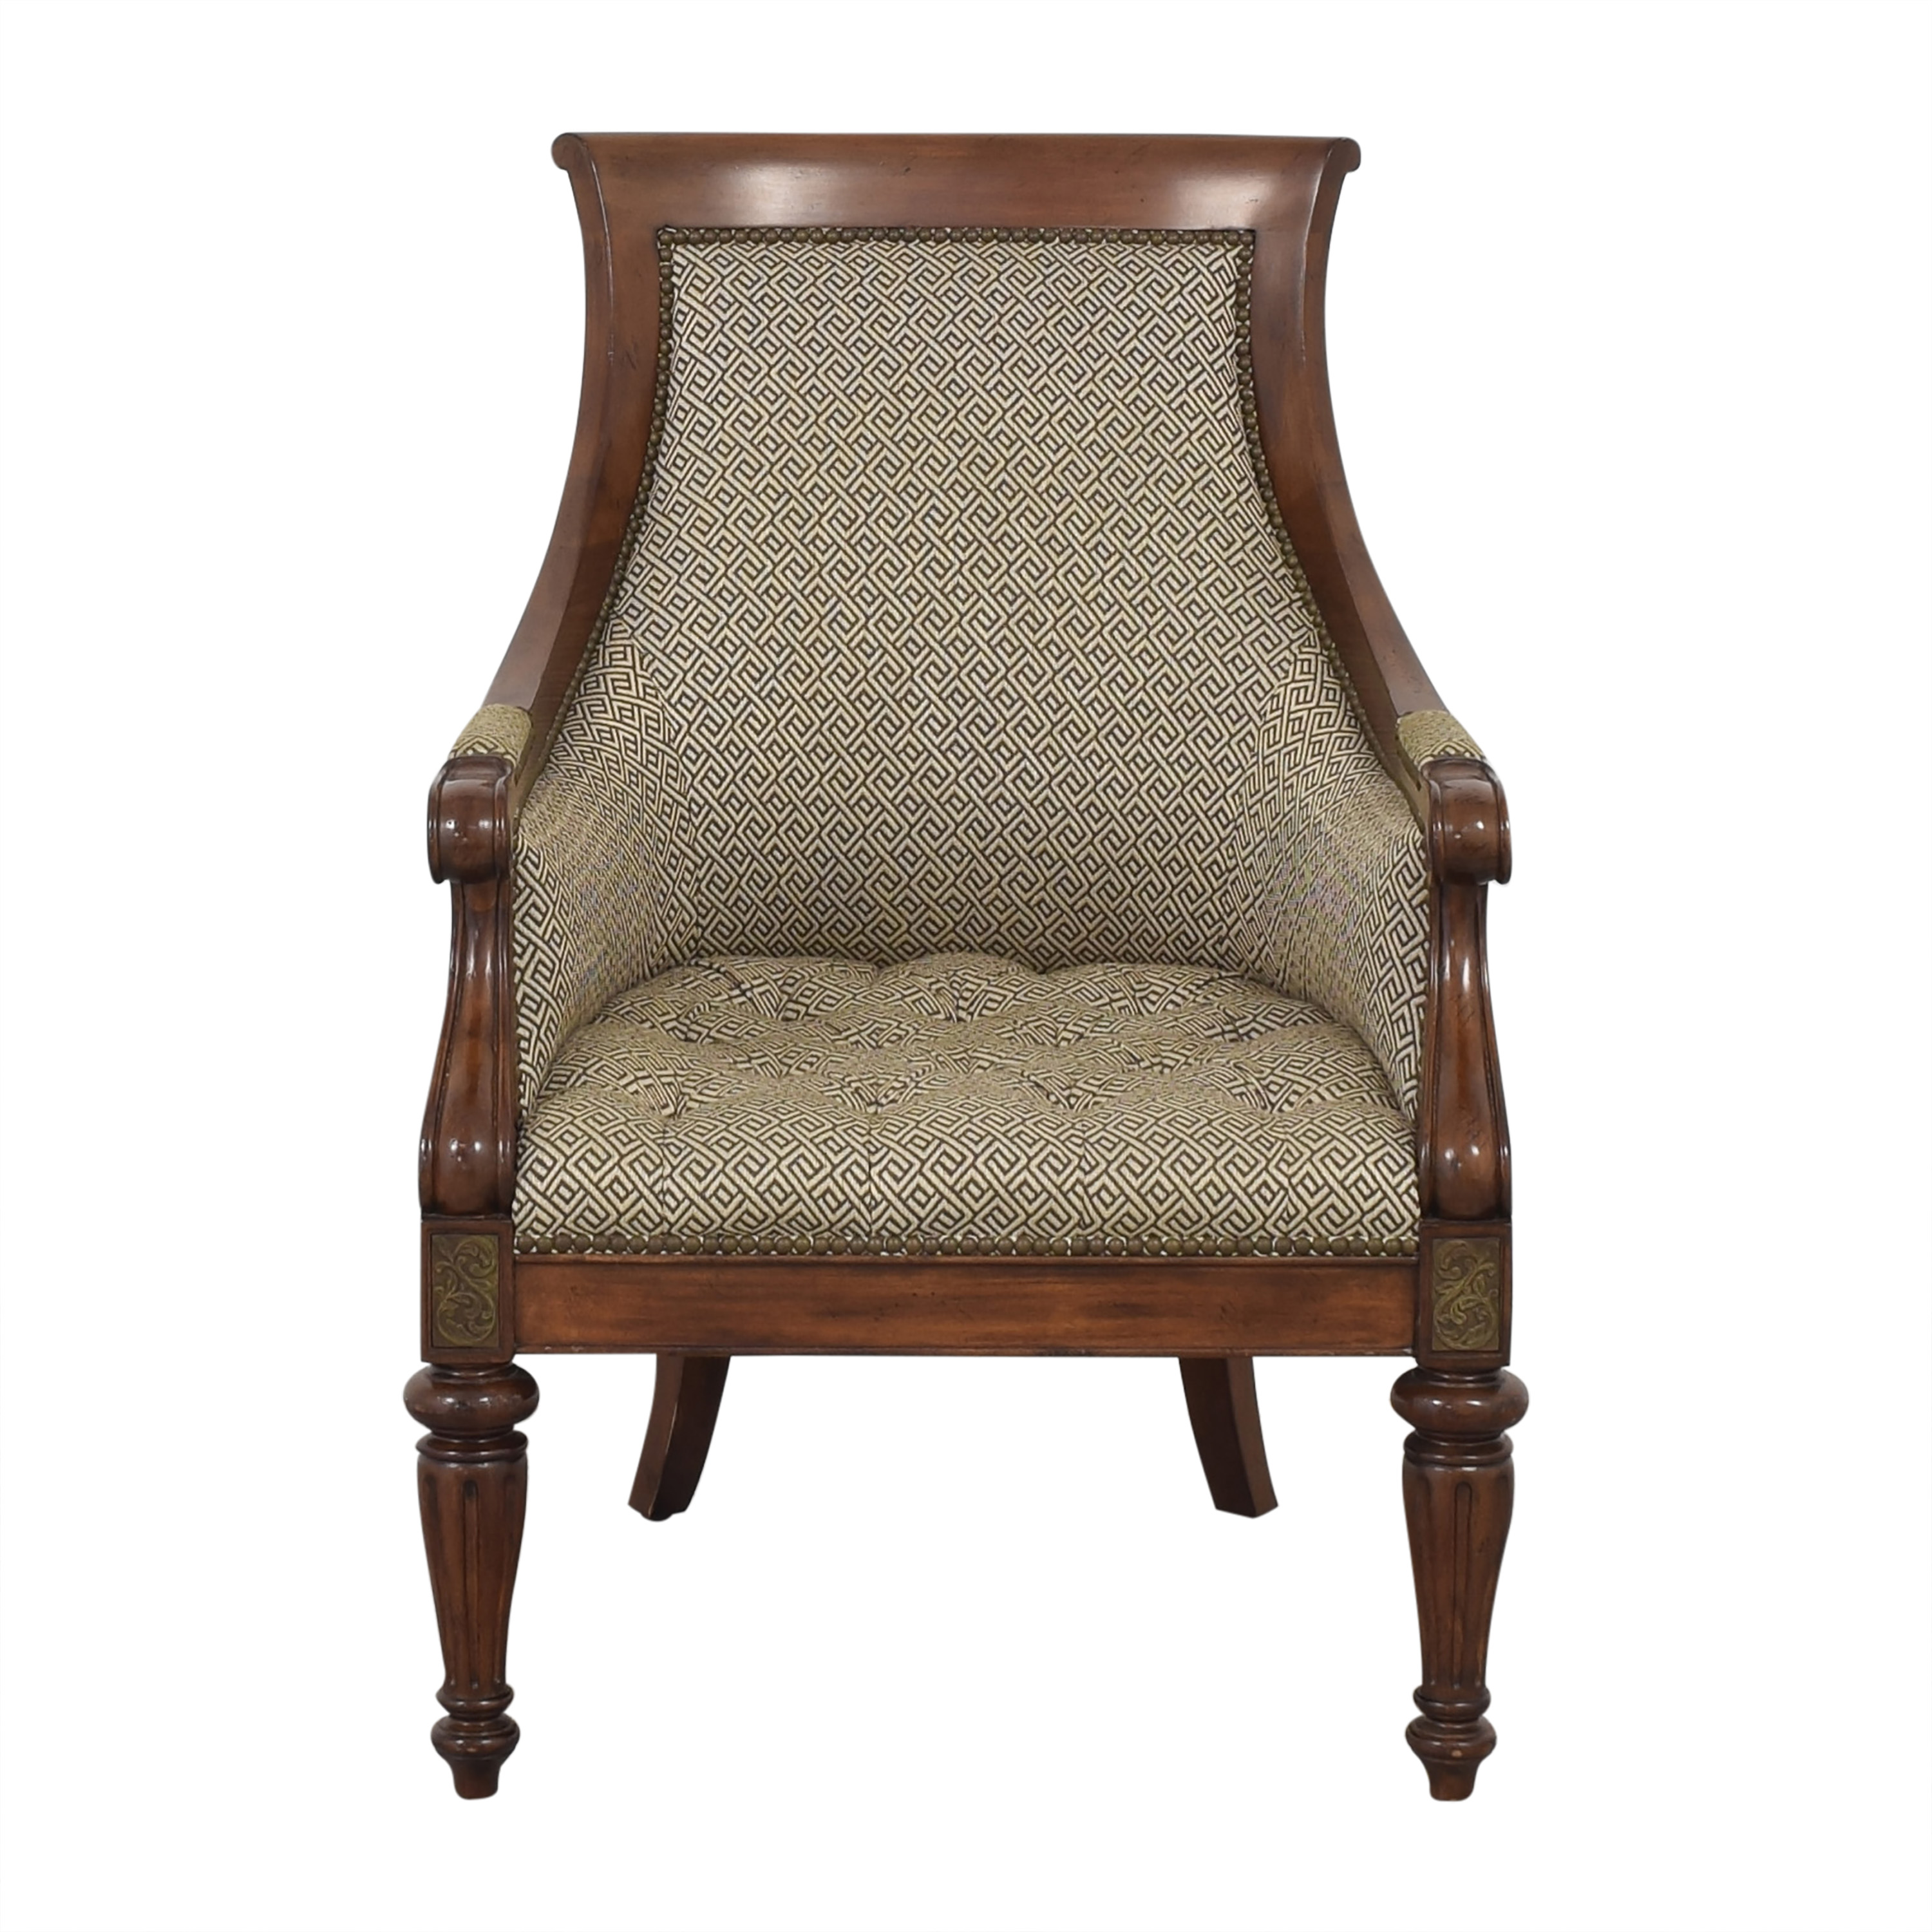 Thomasville Thomasville Accent Chair and Ottoman Accent Chairs